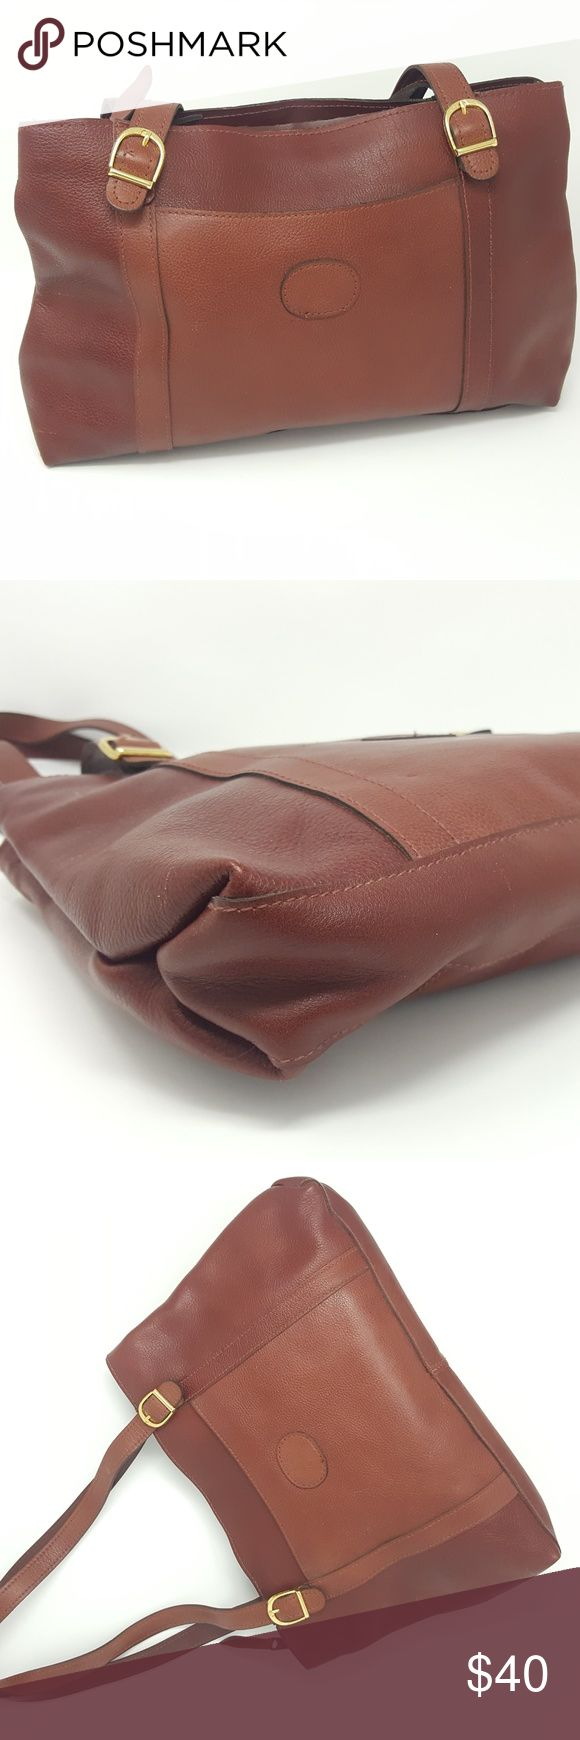 Brown Genuine Leather Bag | Womens Shoulder Purse Genuine brown leather bag. Zippered closure. Gold colored hardware.  Enjoy this high quality leather bag without the expense or guilt of buying new.  Feel good about rescuing a vintage item from the landfill.   Brown Fabric Interior with two sections and a single zippered pocket.  Good condition. Soft Leather.  See Photographs  This item is PRE-OWNED. Bags Shoulder Bags